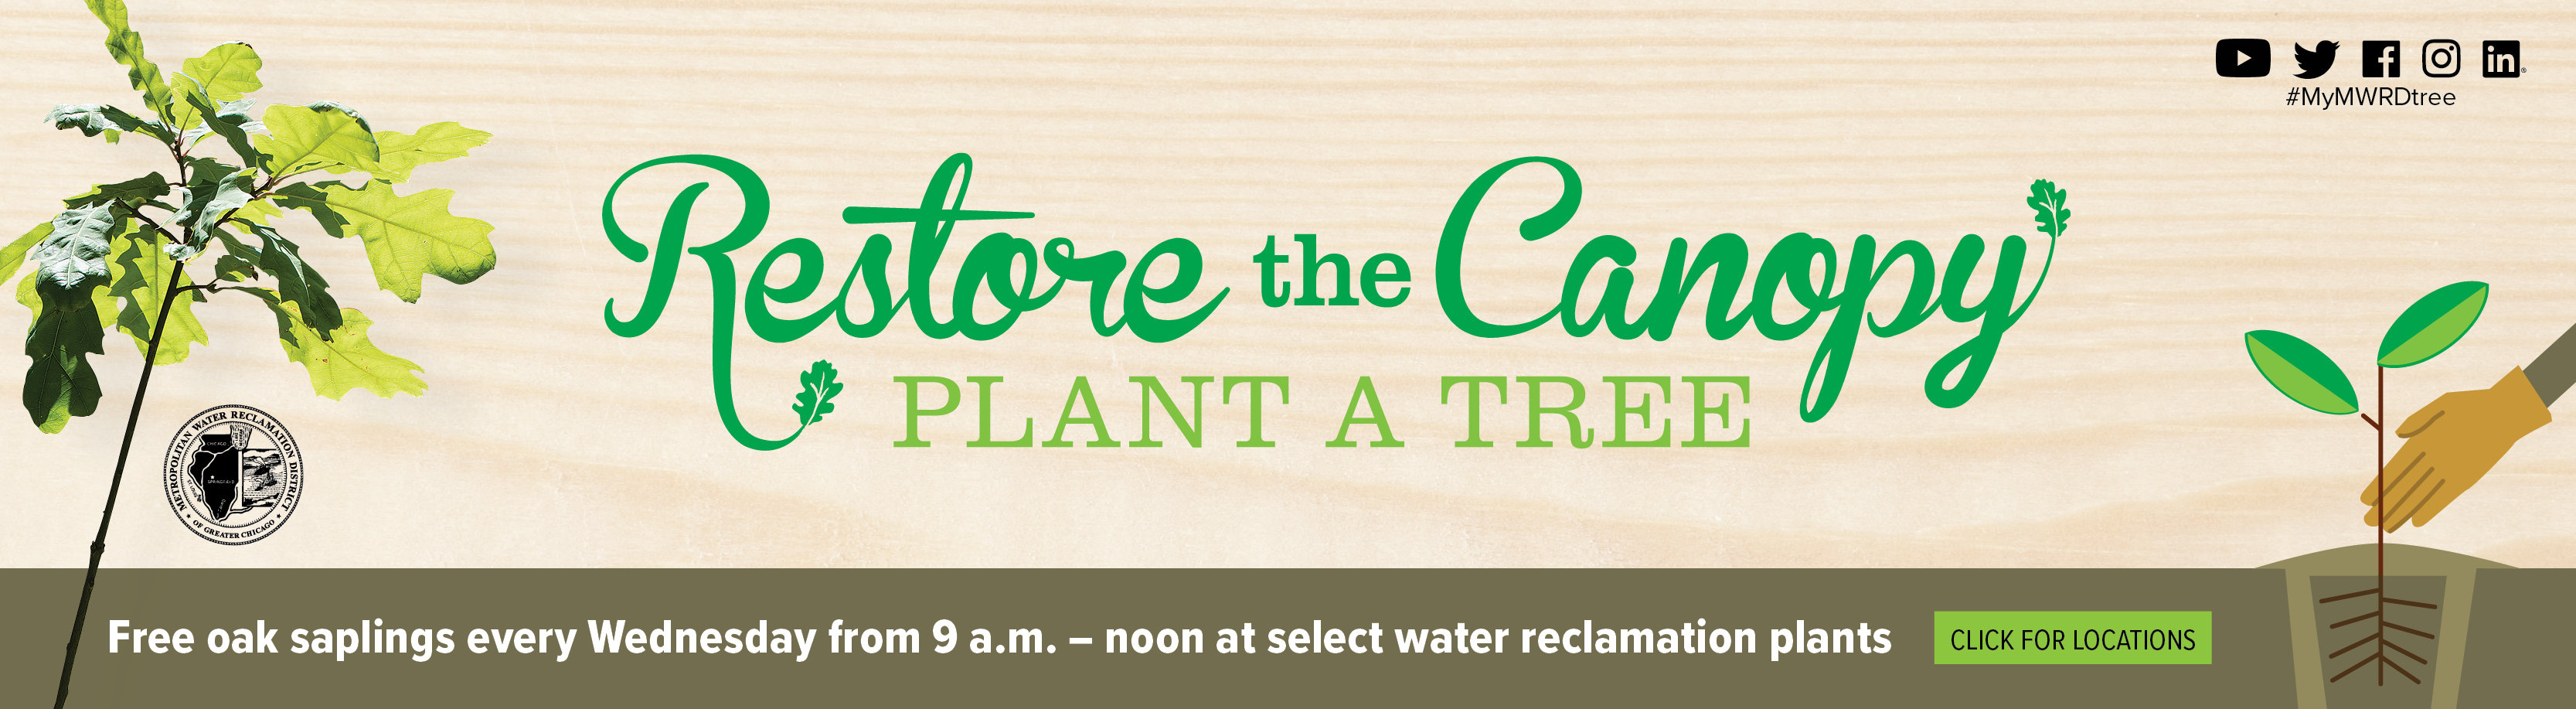 Restore the Canopy, Plant a Tree